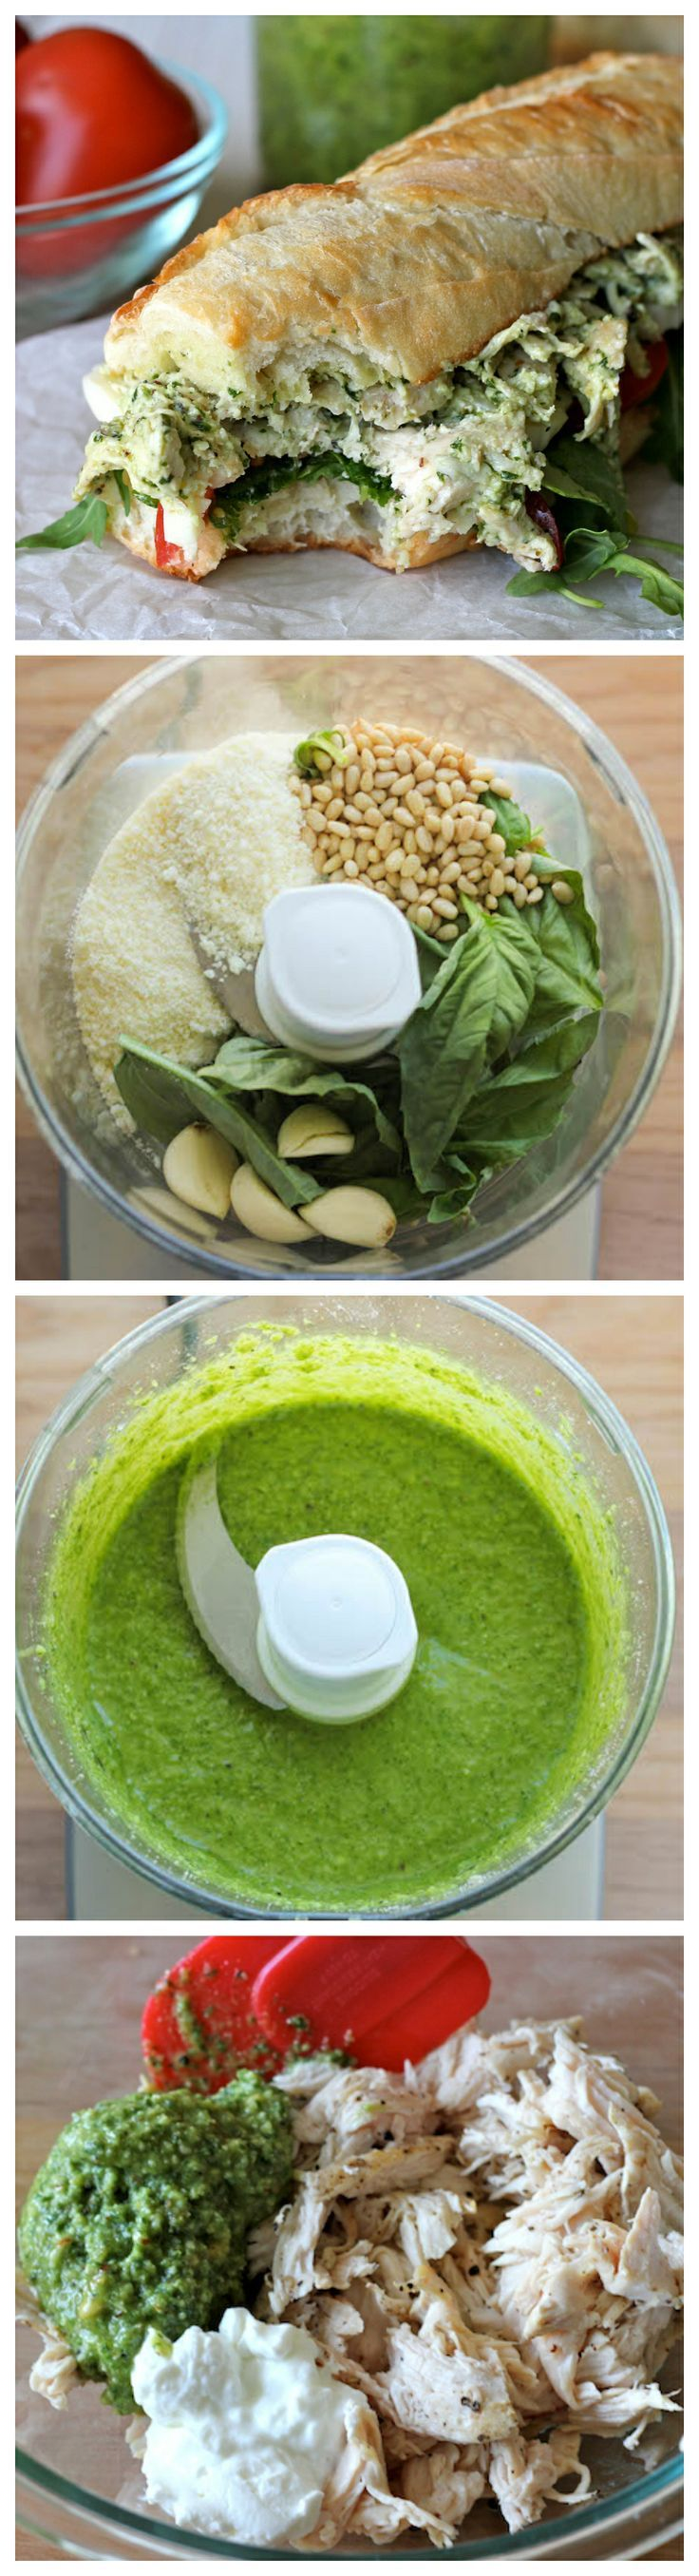 Chicken Pesto Sandwich - Lightened up with Greek yogurt, this hearty sandwich is one of the quickest, most tastiest meals you'll ever have!.